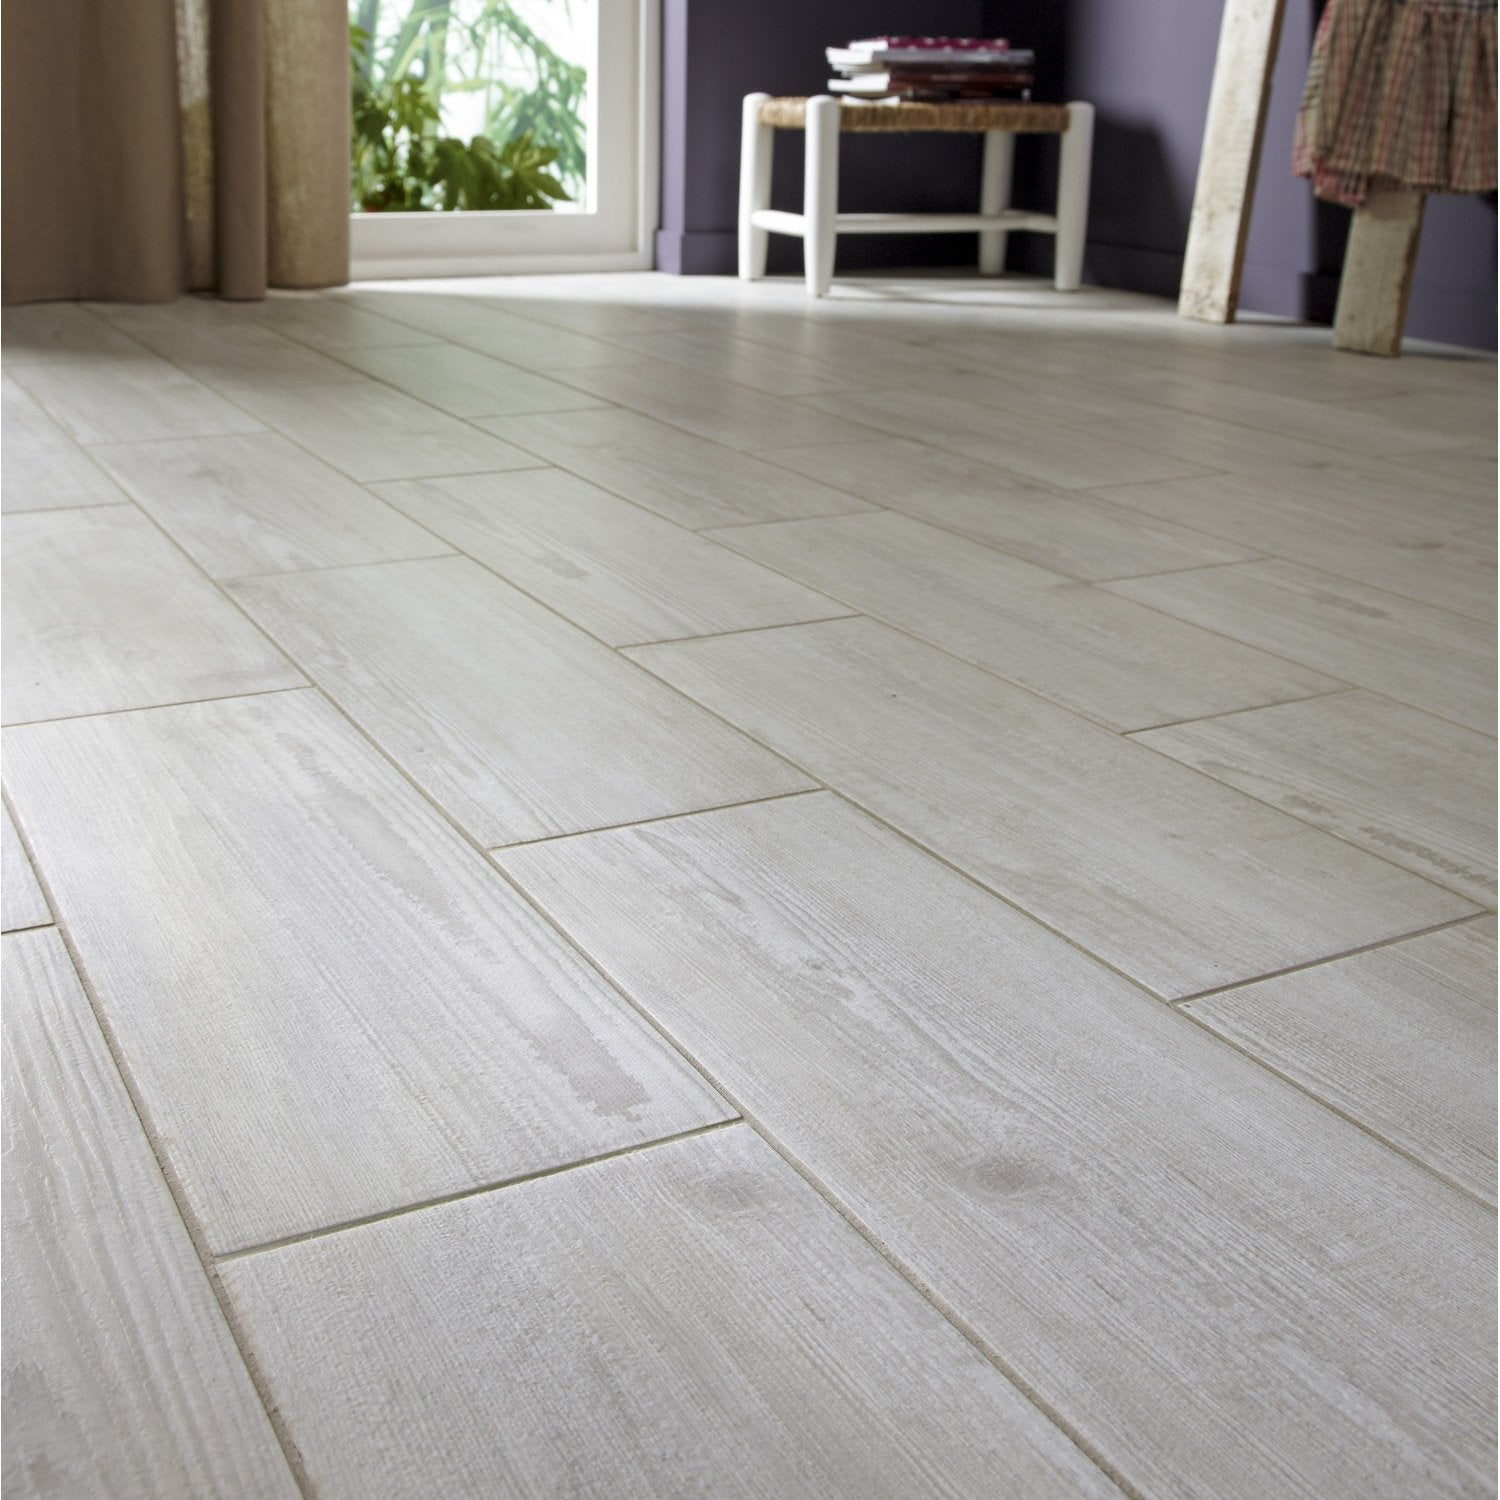 Carrelage gris mur blanc for Carrelage interieur